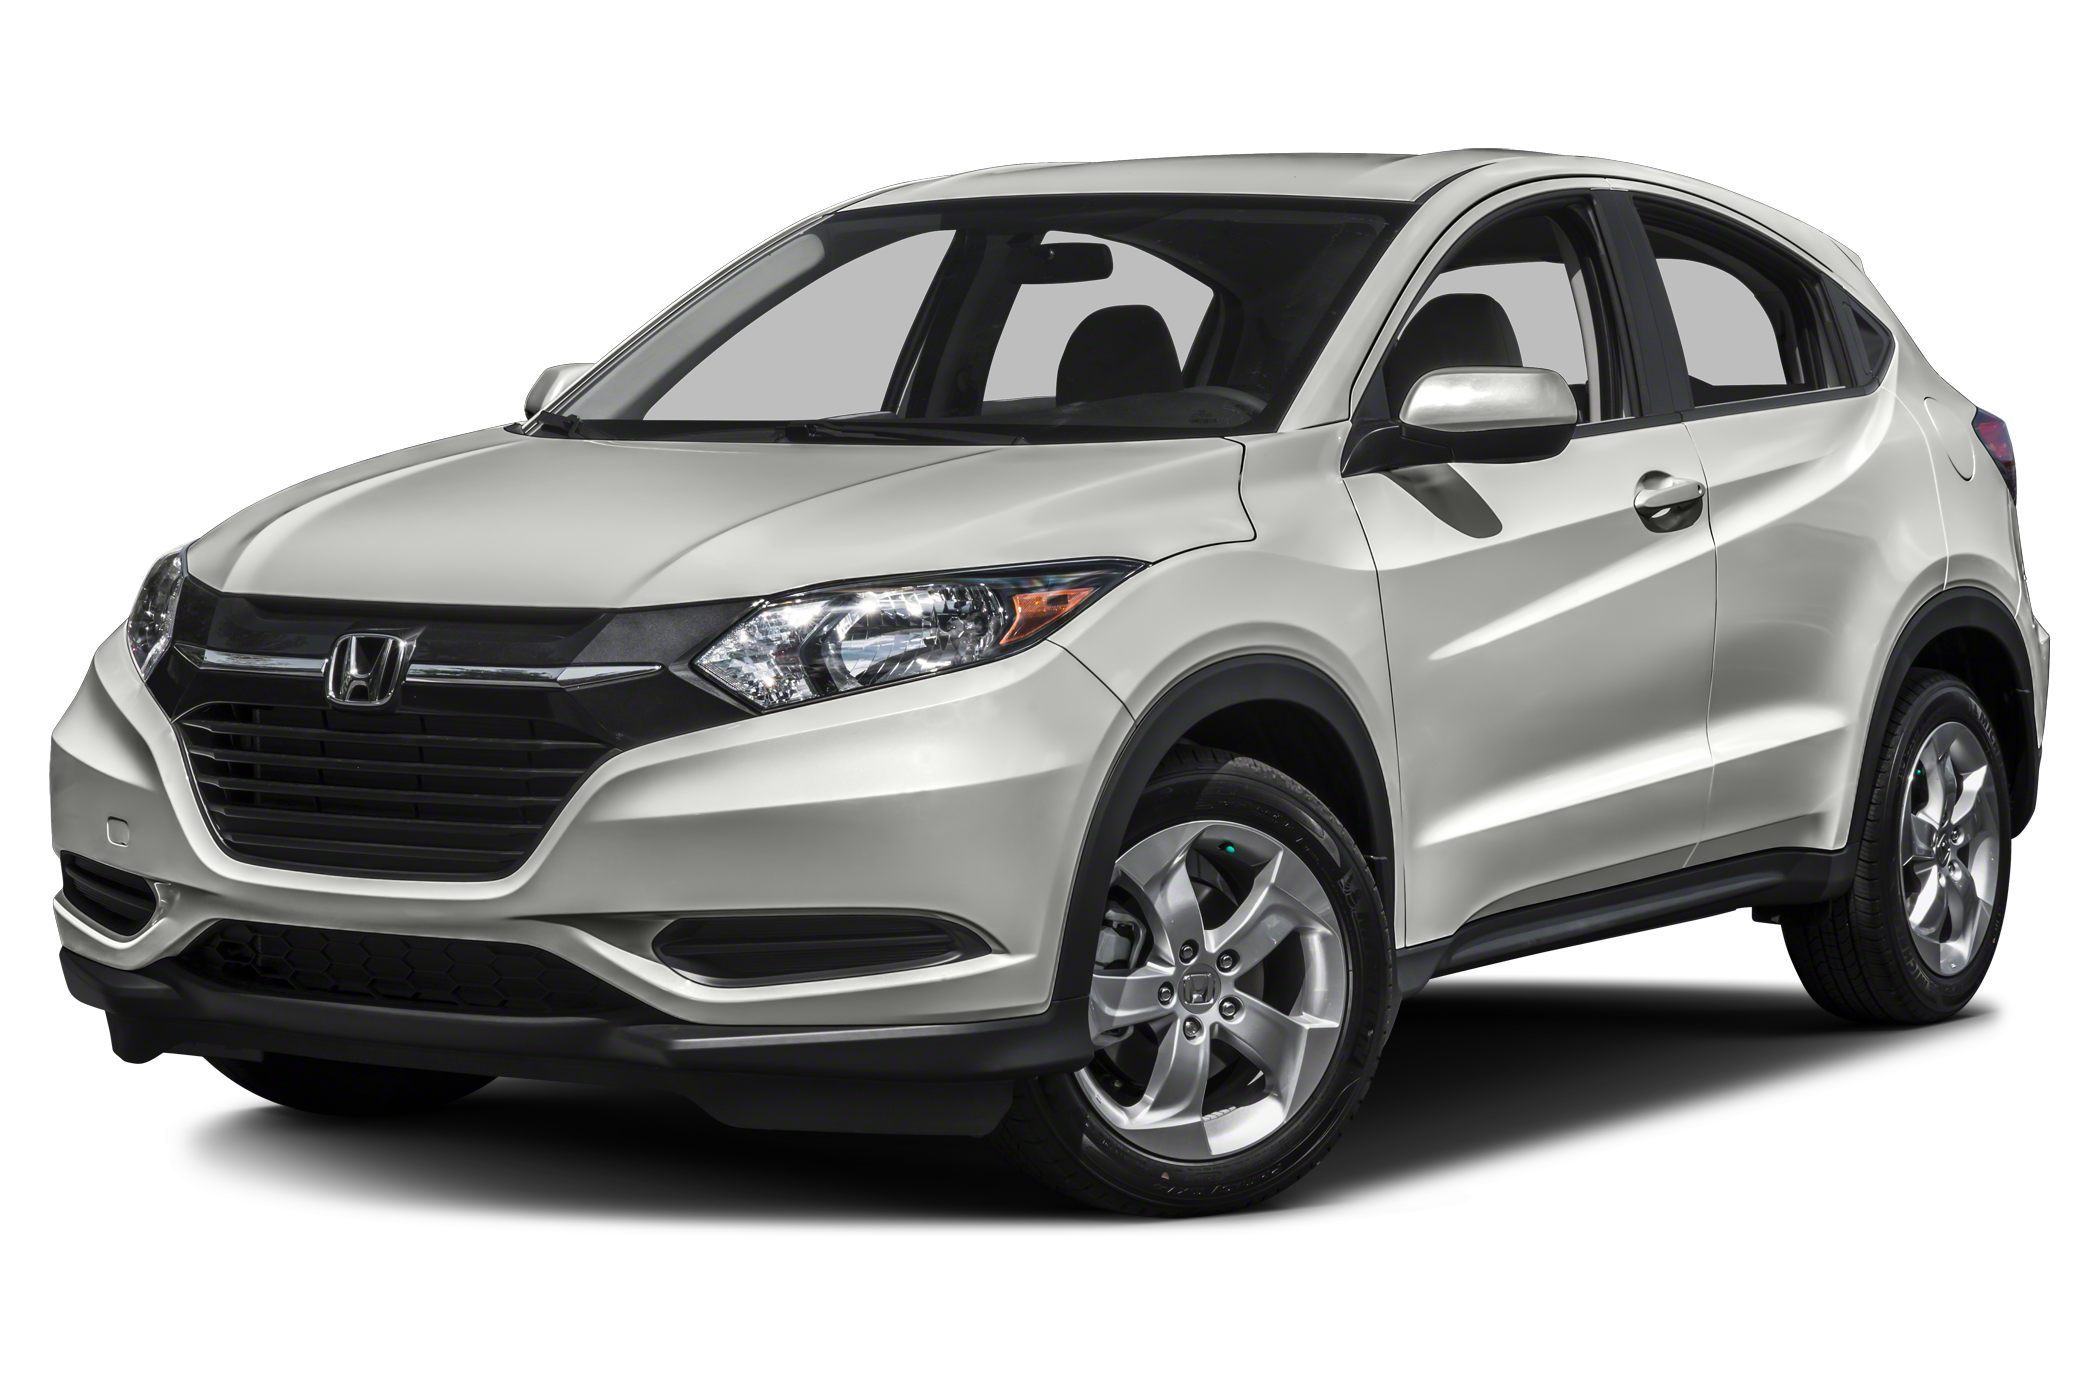 2016 Honda HR-V: The First Three Months With Our Jack Of